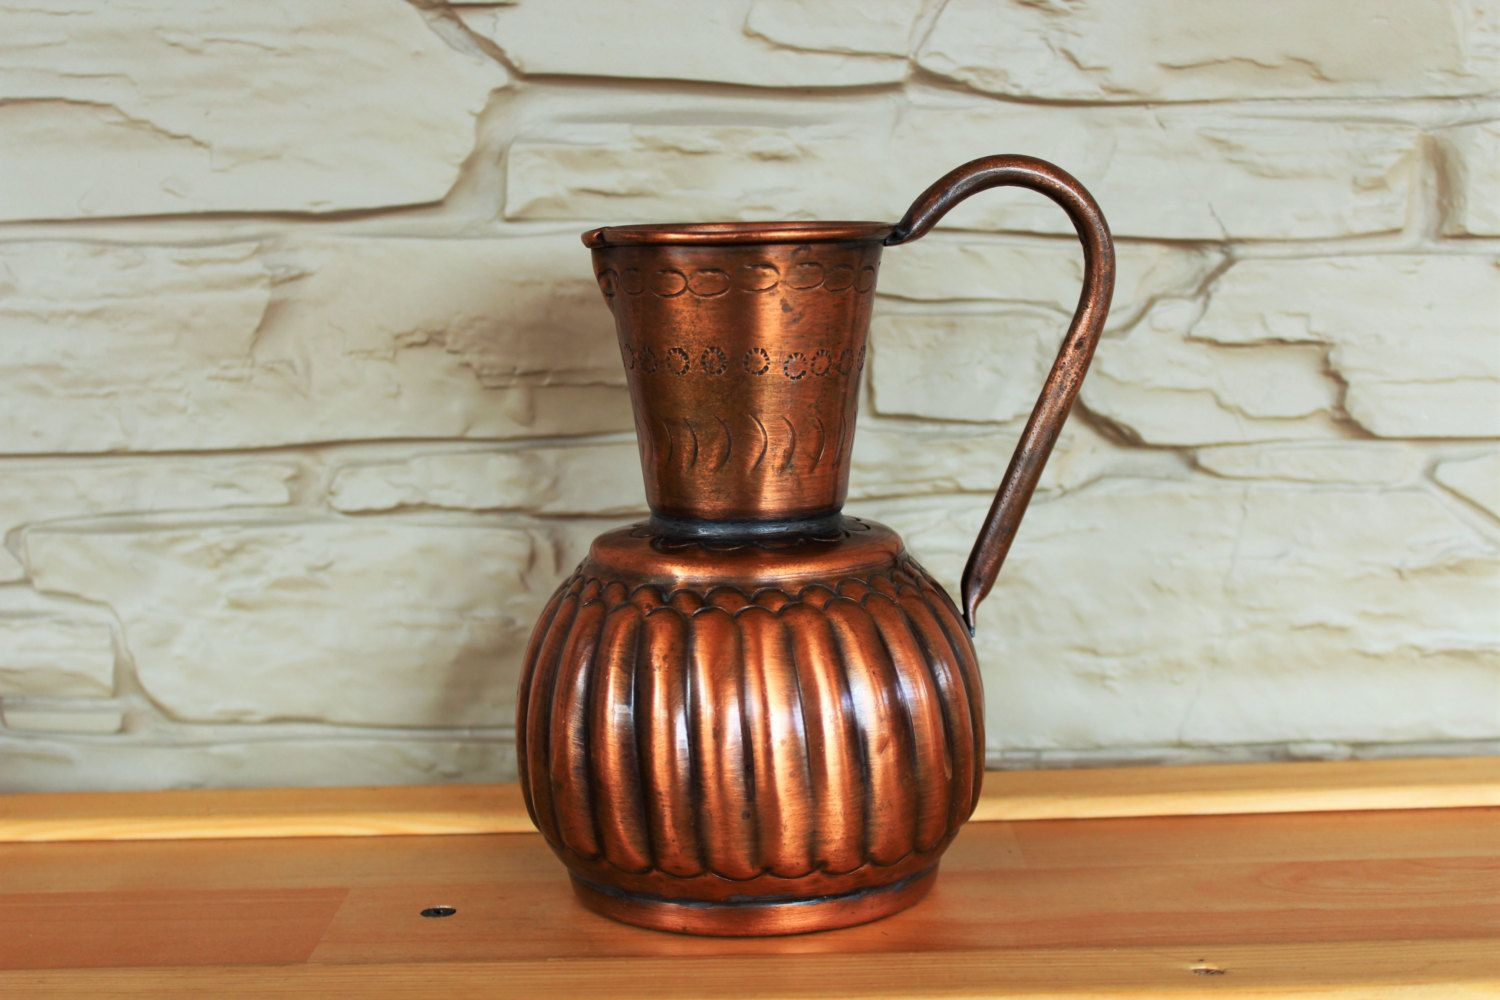 Decorative Jugs And Vases Antique French Copper Pitcher Copper Water Jug Brass Decorative